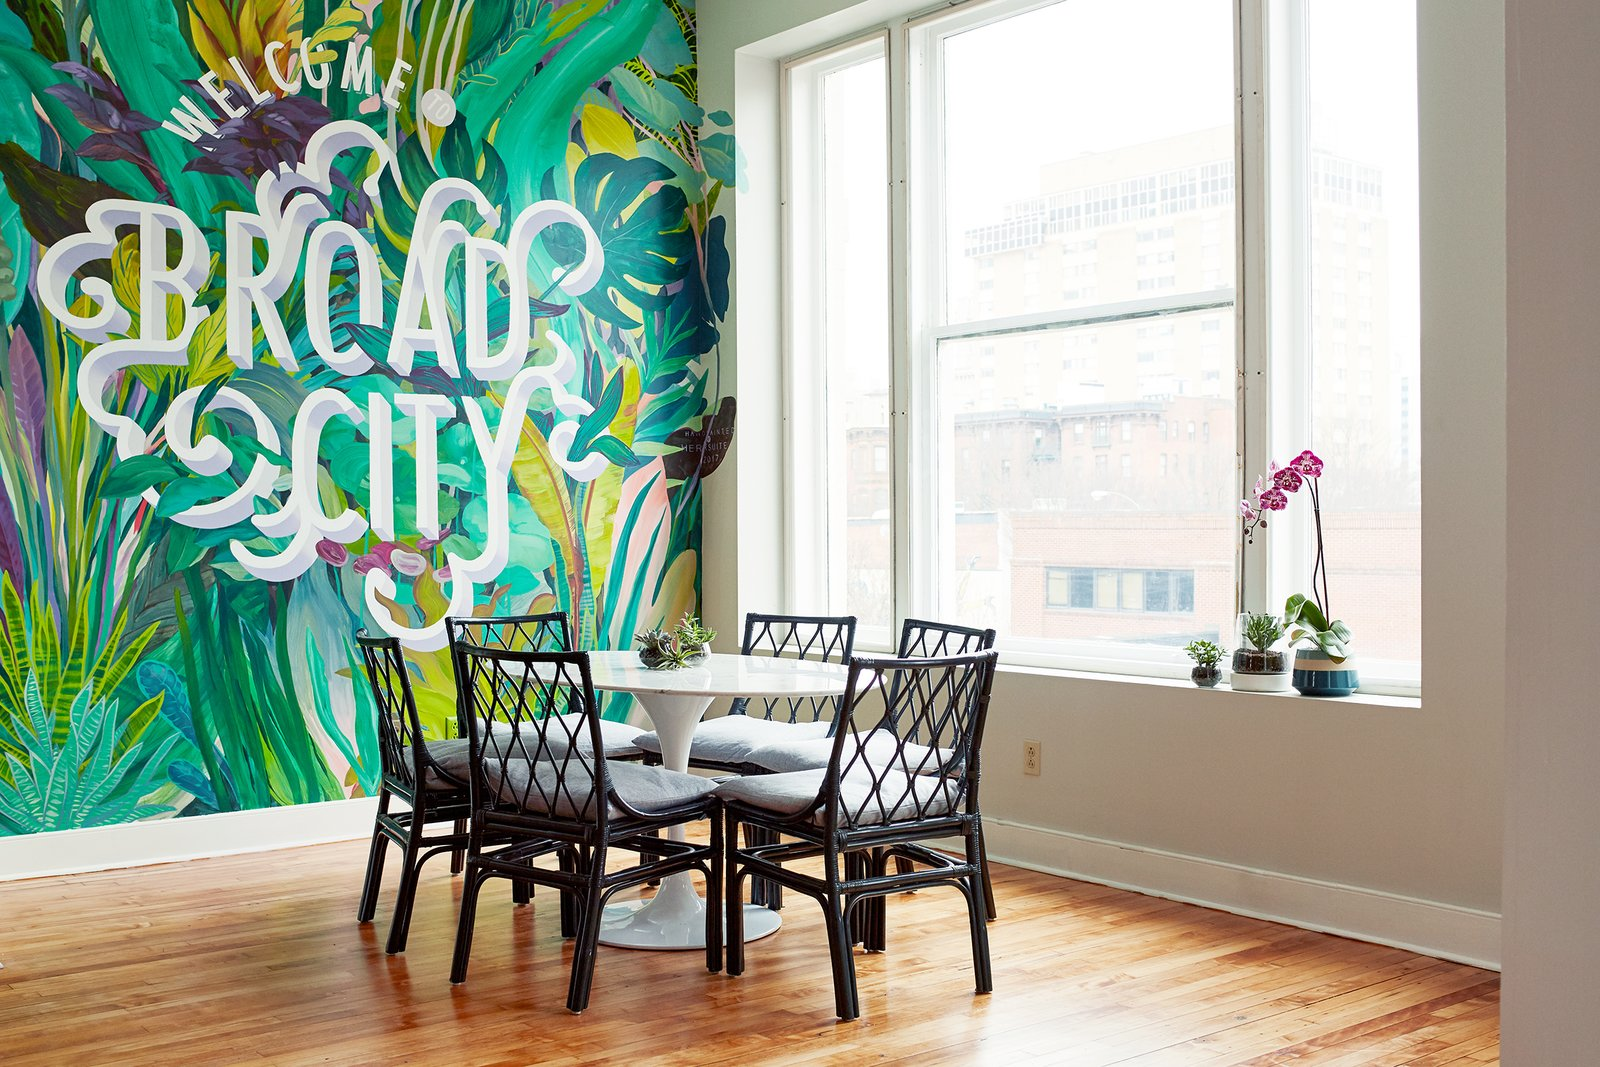 Furnishings and decor throughout The Broad are feminine, but not overly girly.  Photo 11 of 17 in 6 Co-Working Clubs Catered to Women That Radiate Good Vibes and Beautiful Designs